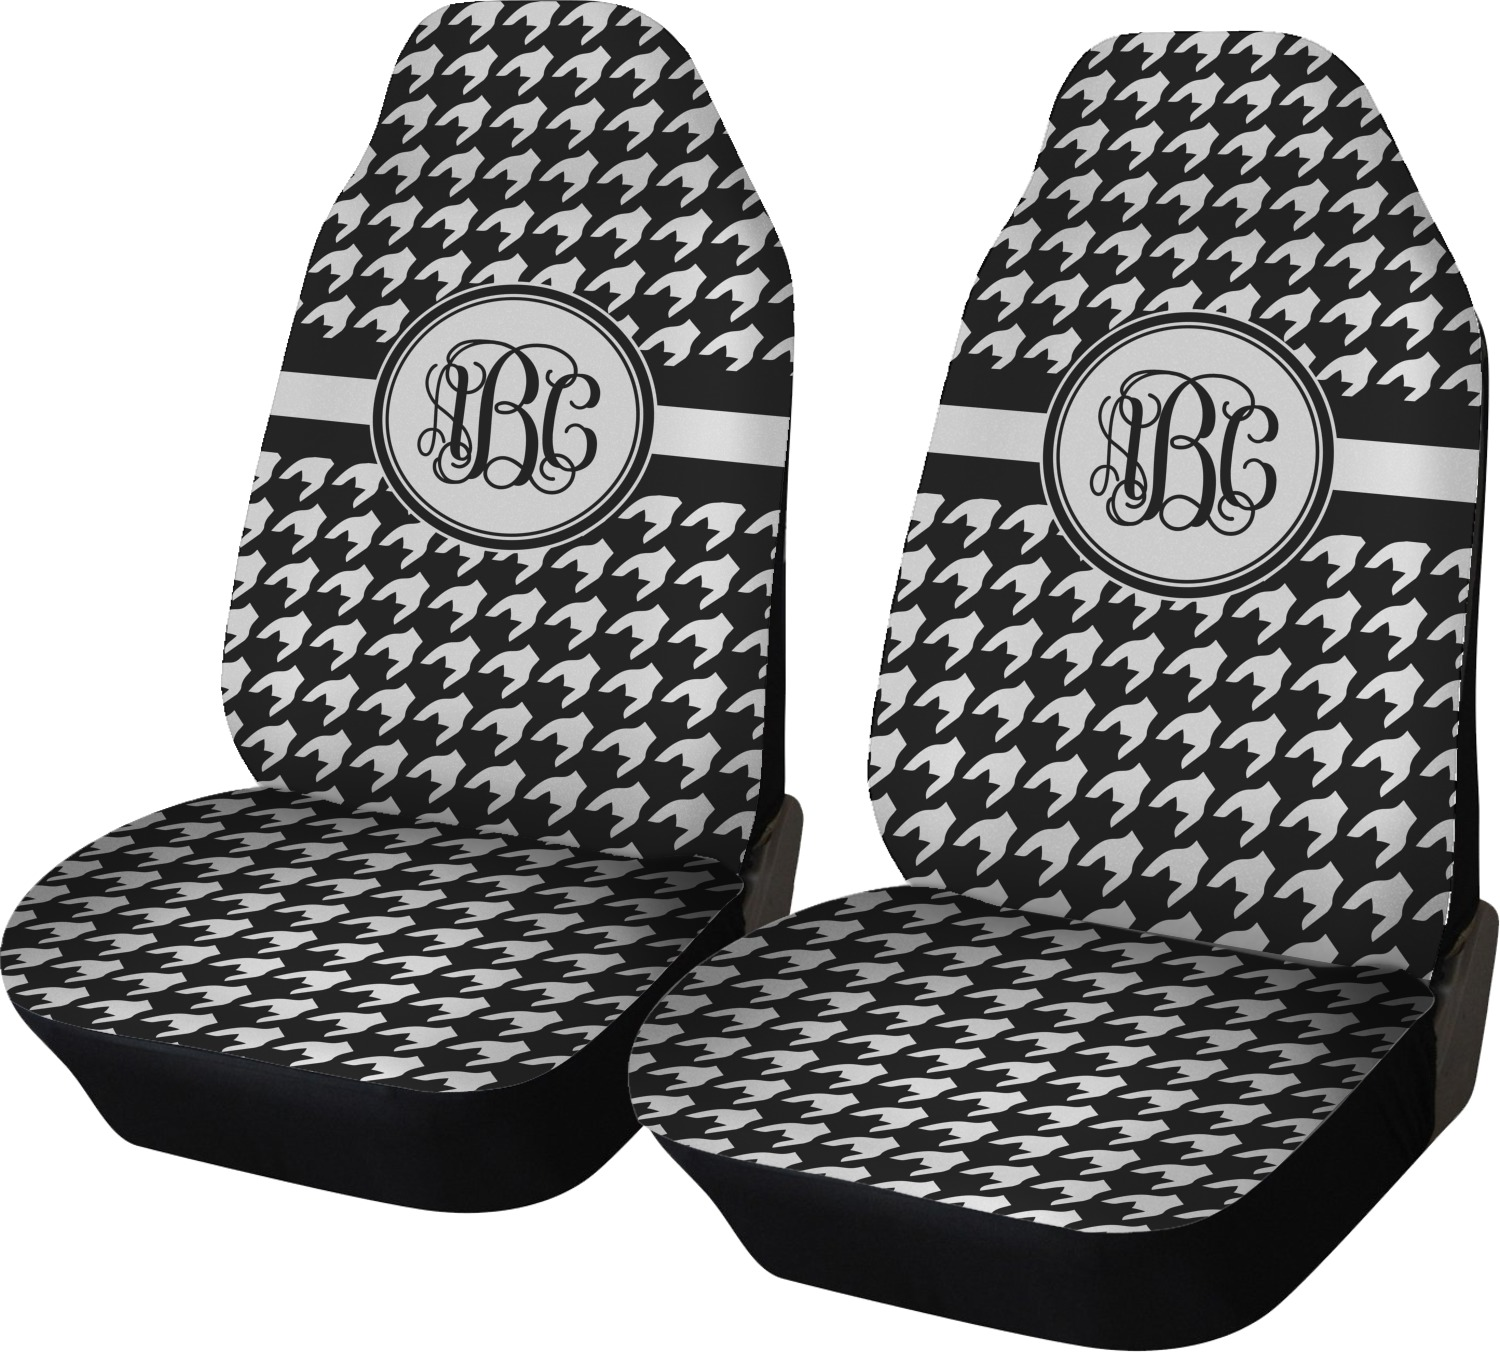 Houndstooth Car Seat Covers Set Of Two Personalized